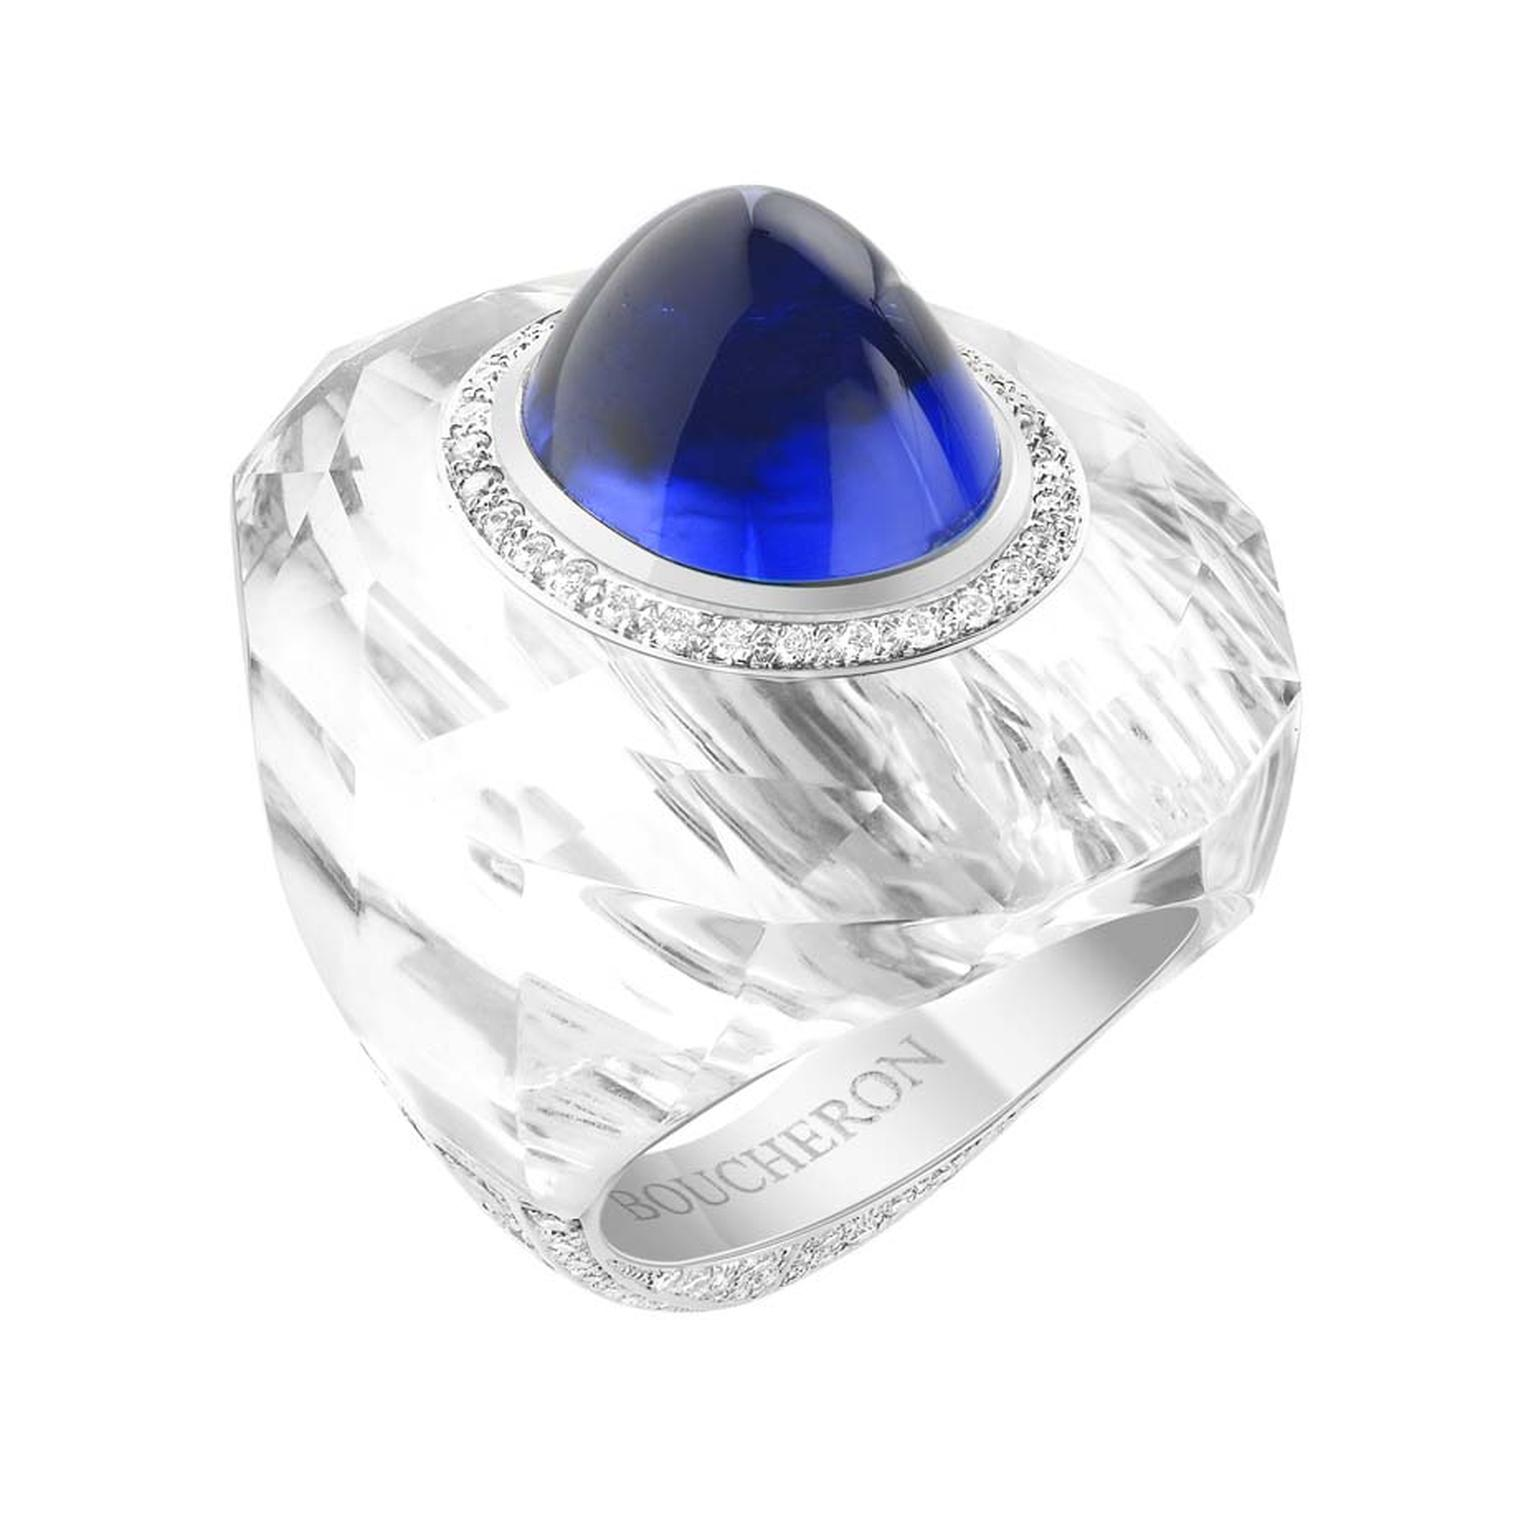 Boucheron's Trésor de Perse ring, created for the Biennale des Antiquaires 2014, features a historic 16ct cabochon sapphire set into carved rock crystal with chalcedonies and diamonds.